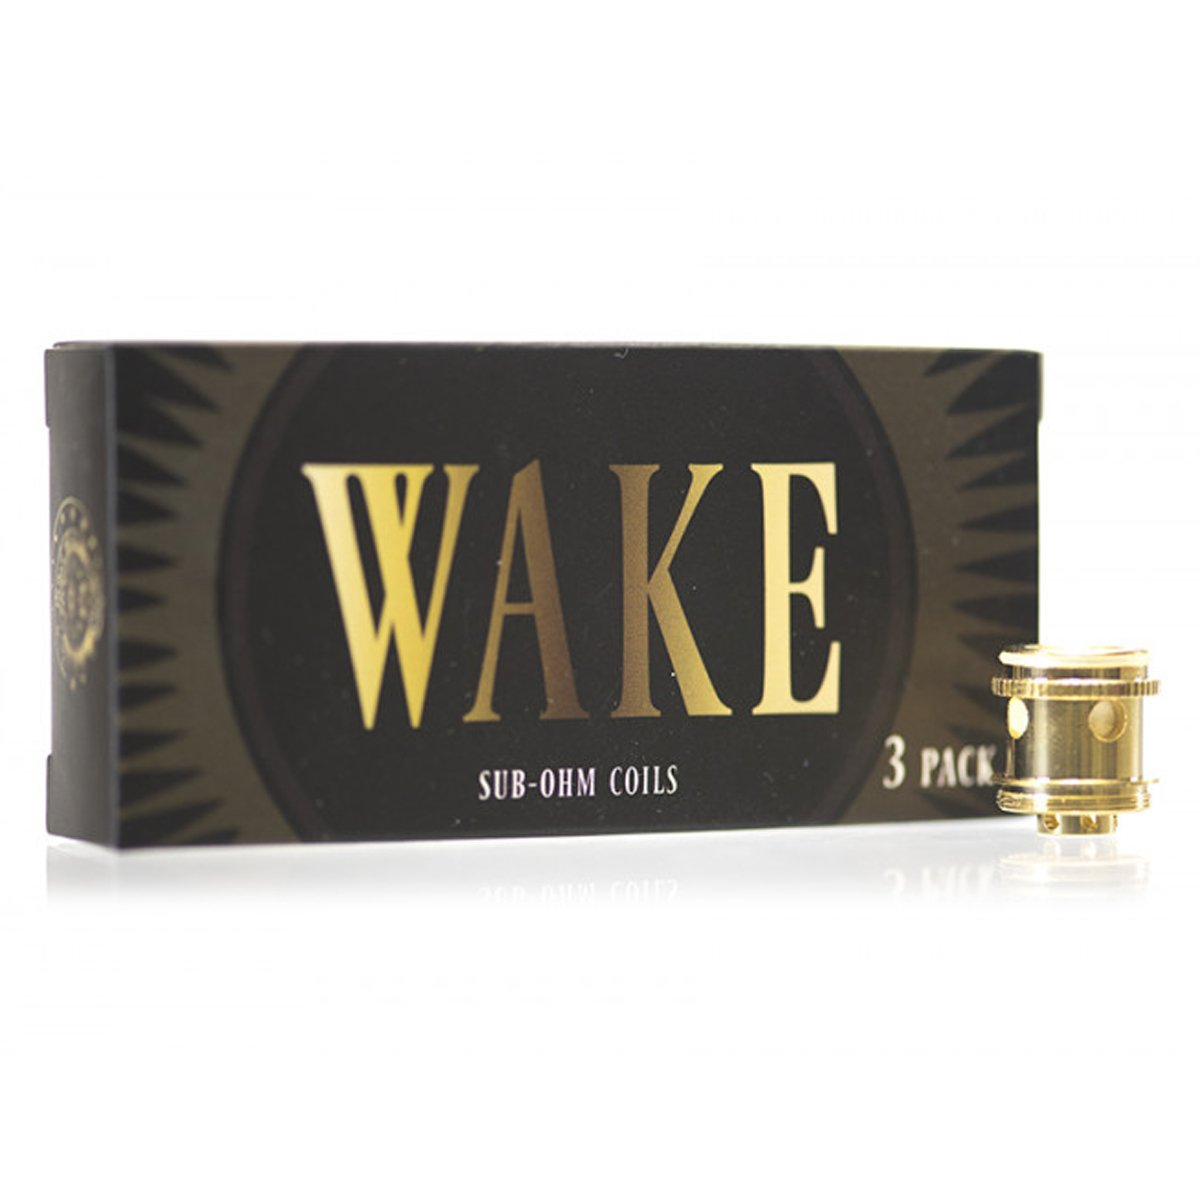 Wake Mod Co. Replacement Sub-Ohm Coil 3PK